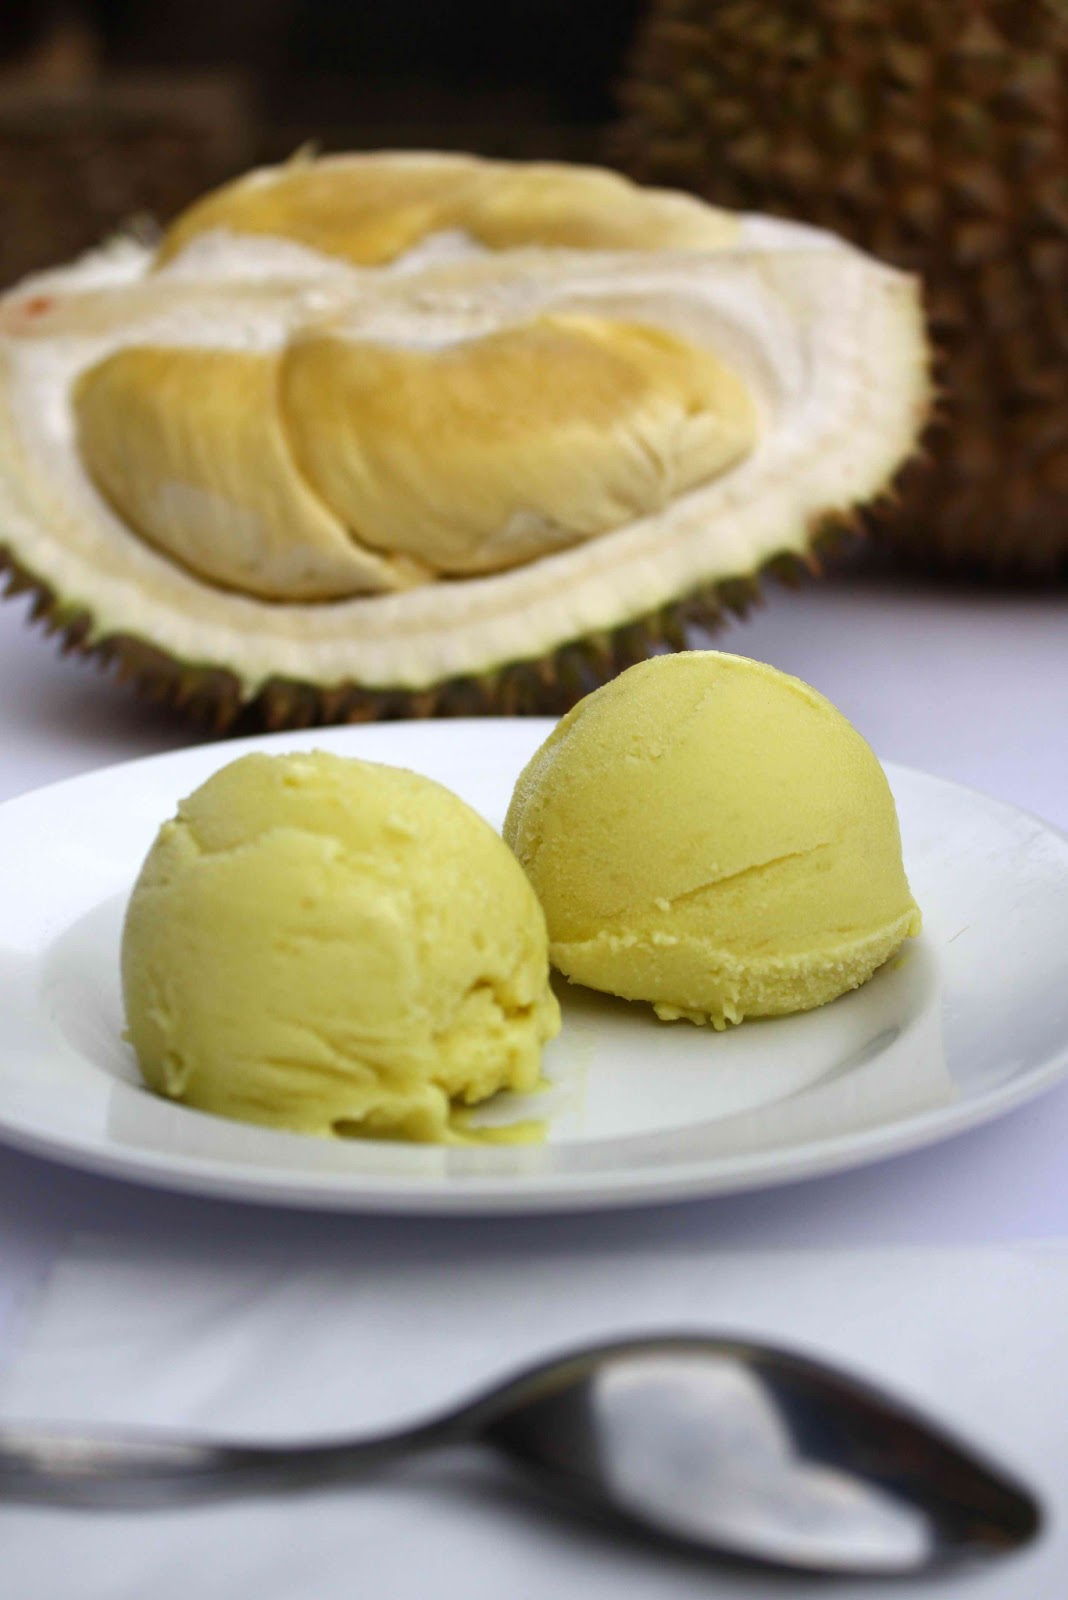 Fresh Ice Cream with exotic flavors such as Jackfruit, Durian, Ube, Halo-Halo, and Mochi